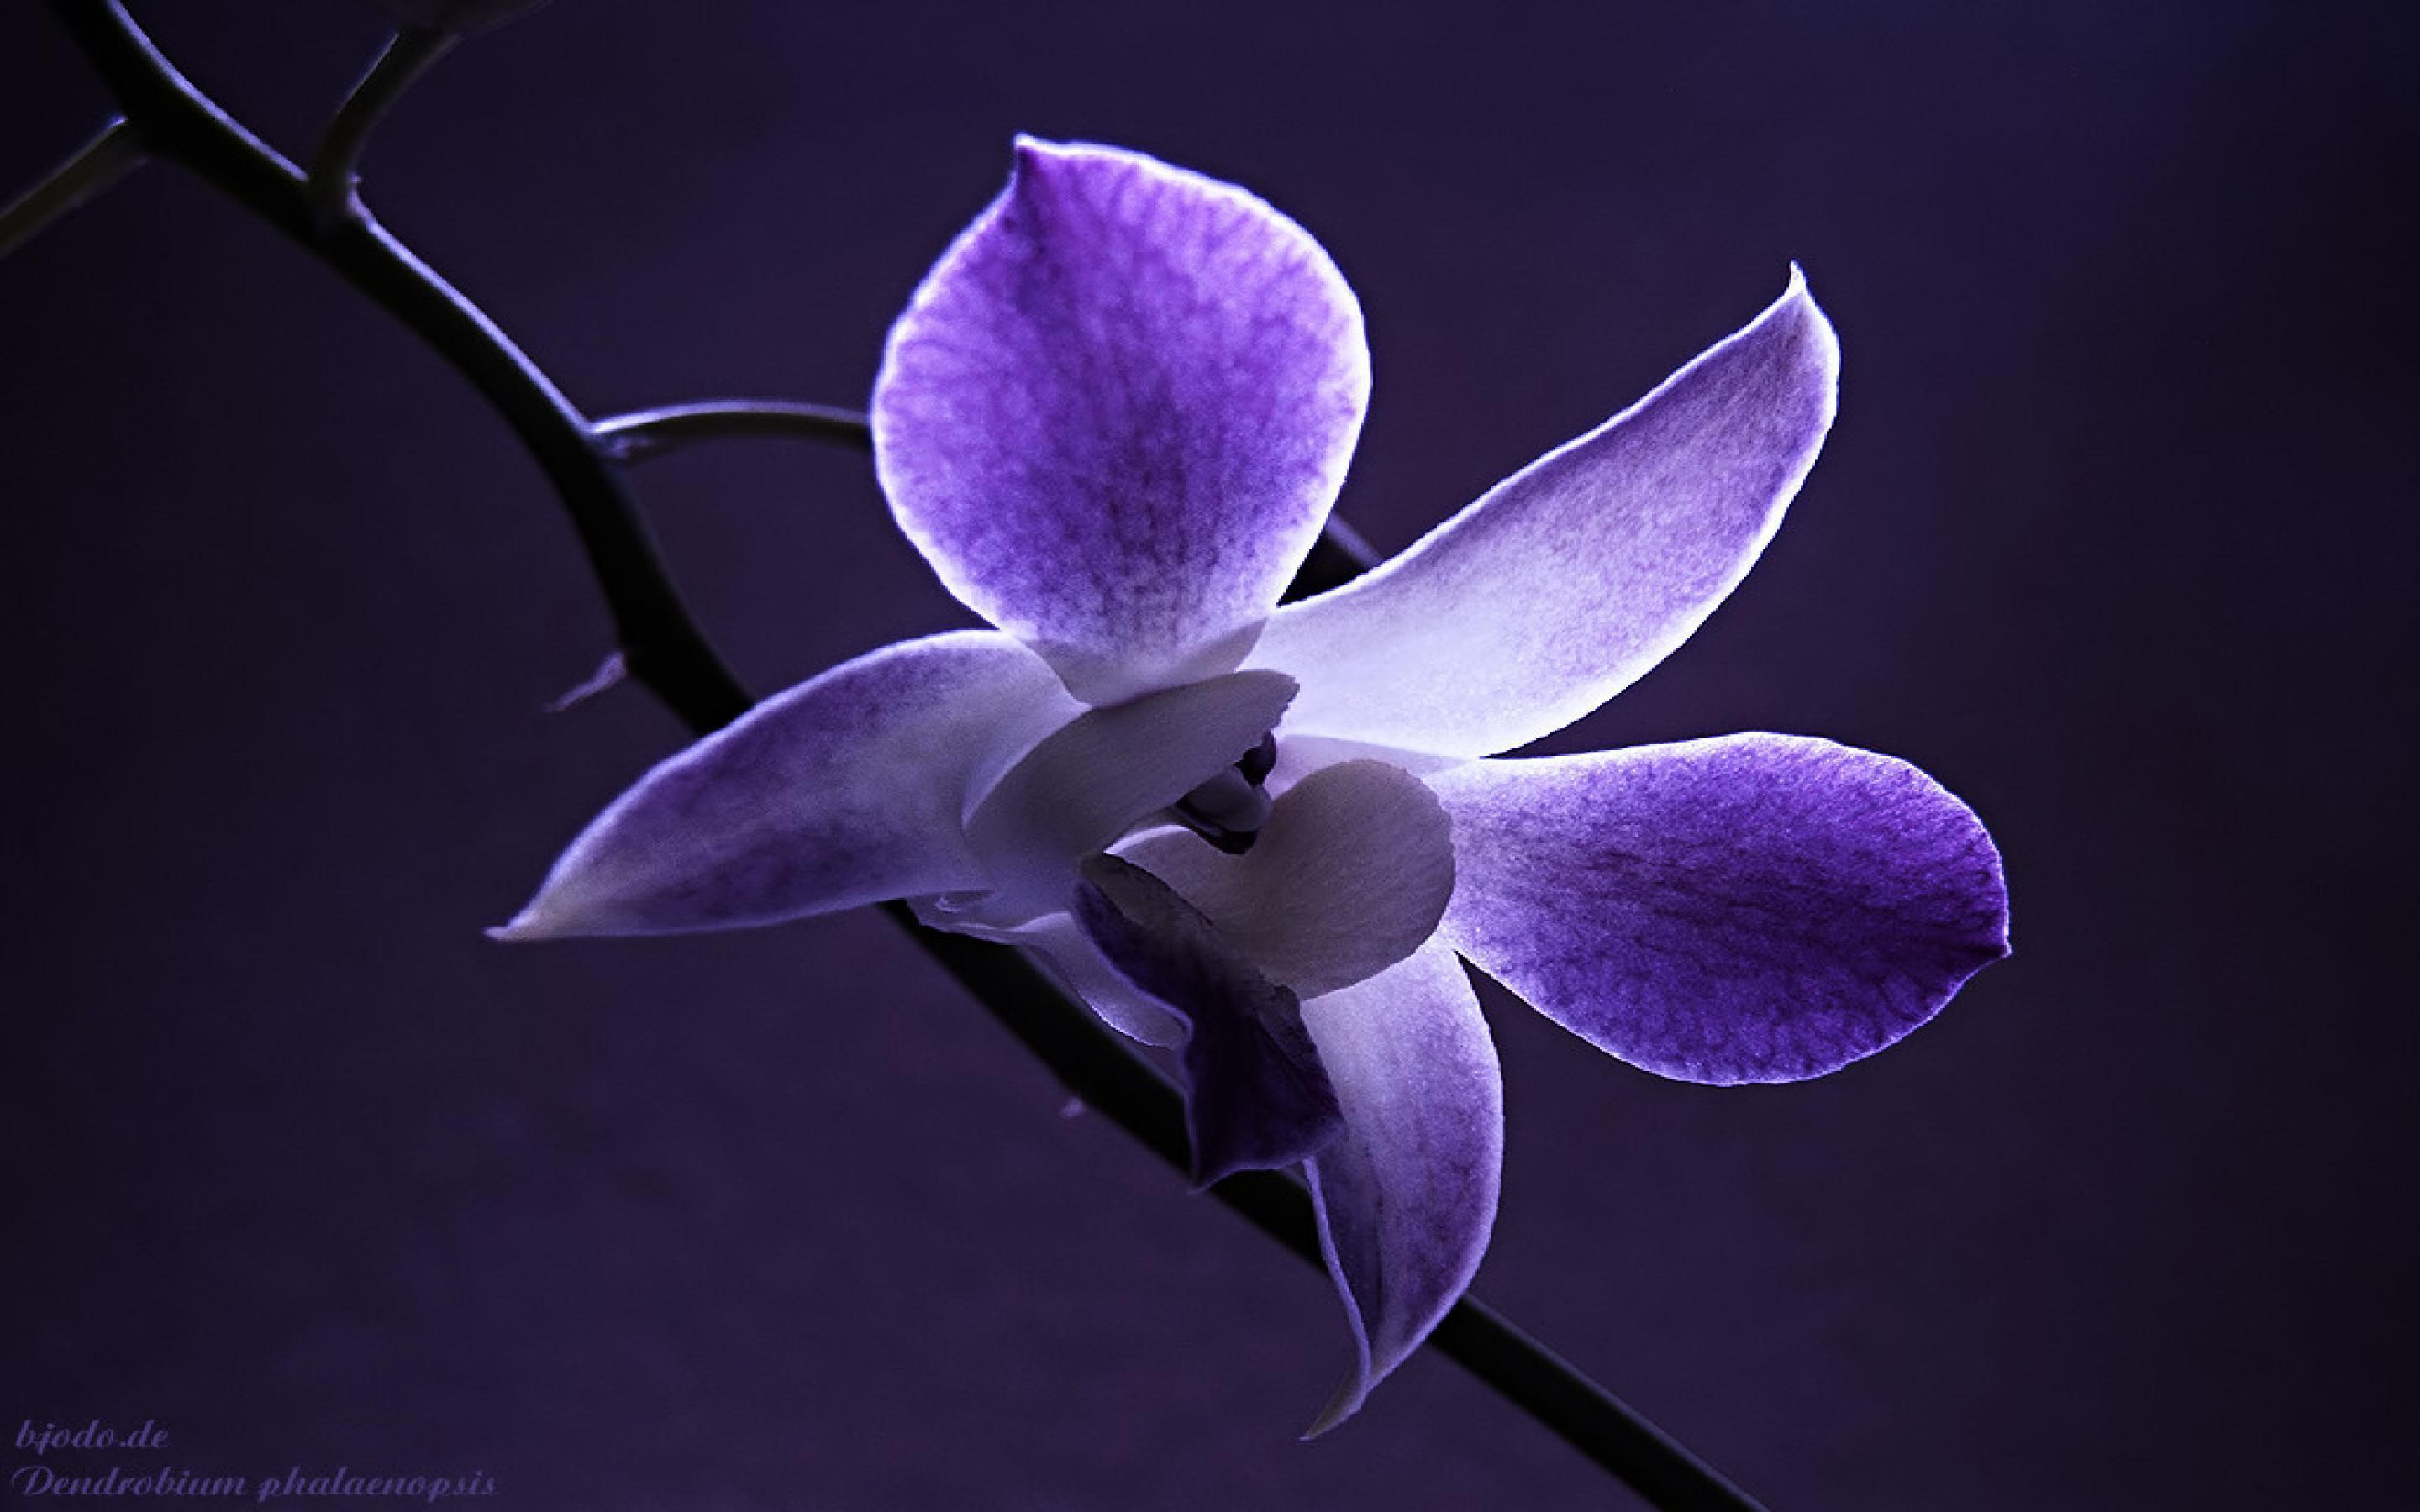 orchid wallpapers backgrounds images - photo #12